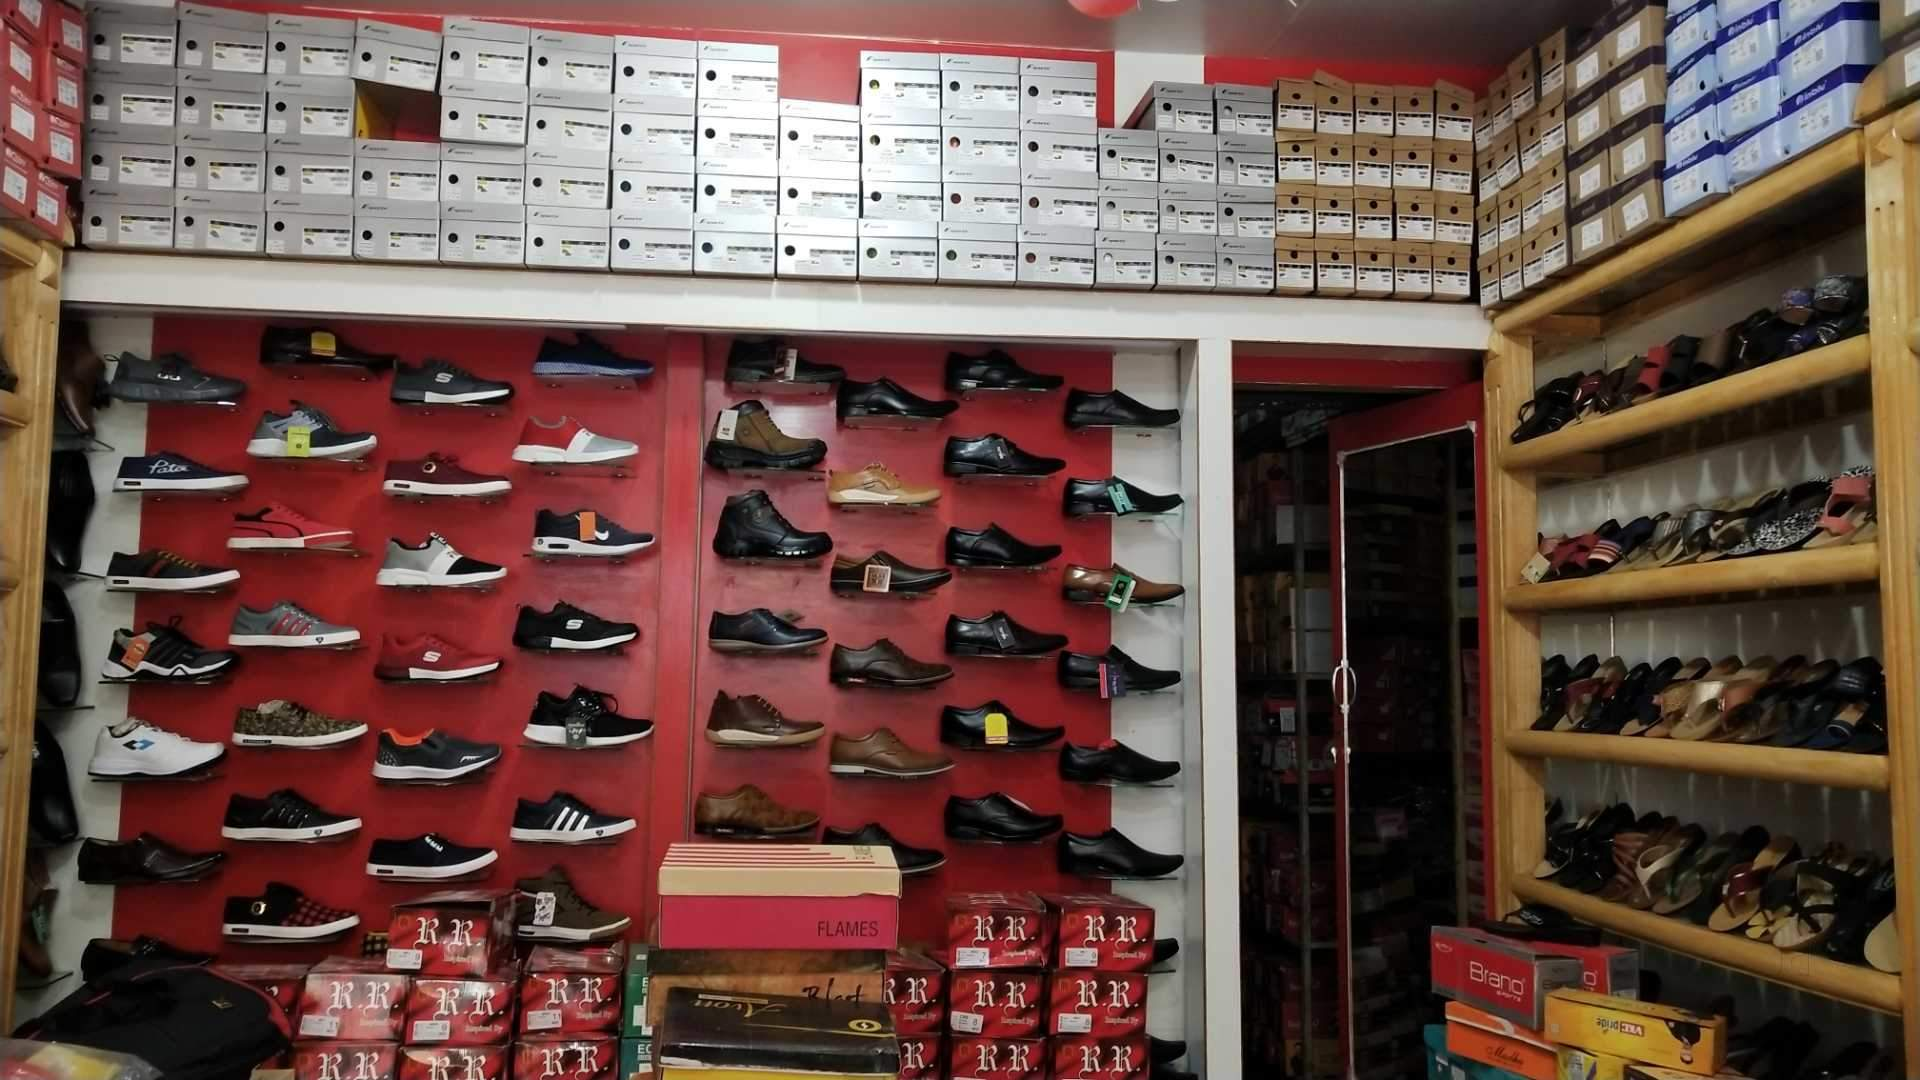 ea3f54f276d8 Top 100 Crocs Shoe Dealers in Chennai - Best Crocs Shoe Dealers ...